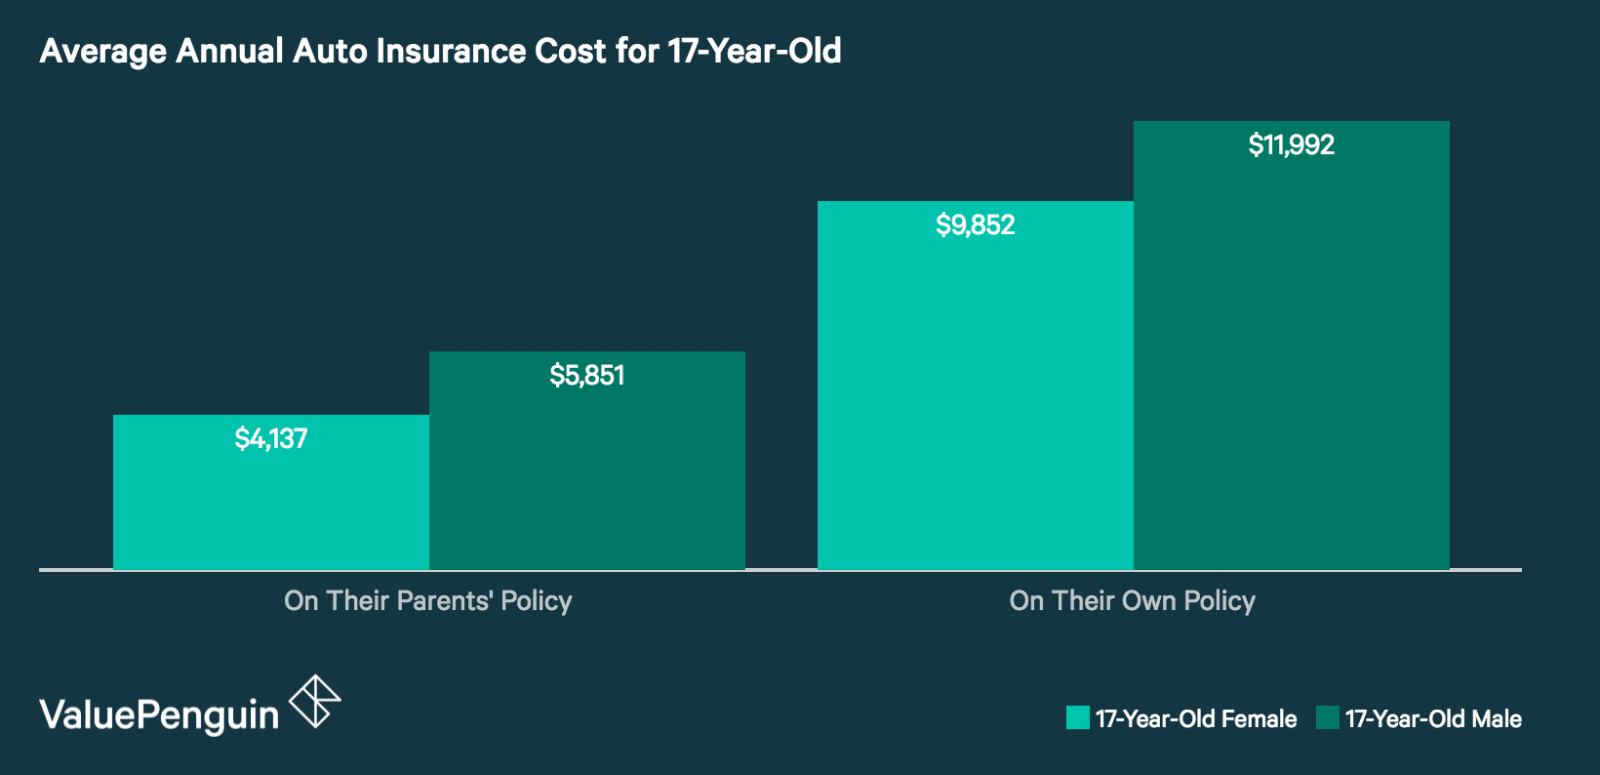 Annual Auto Insurance Premiums for a 17-Year-Old